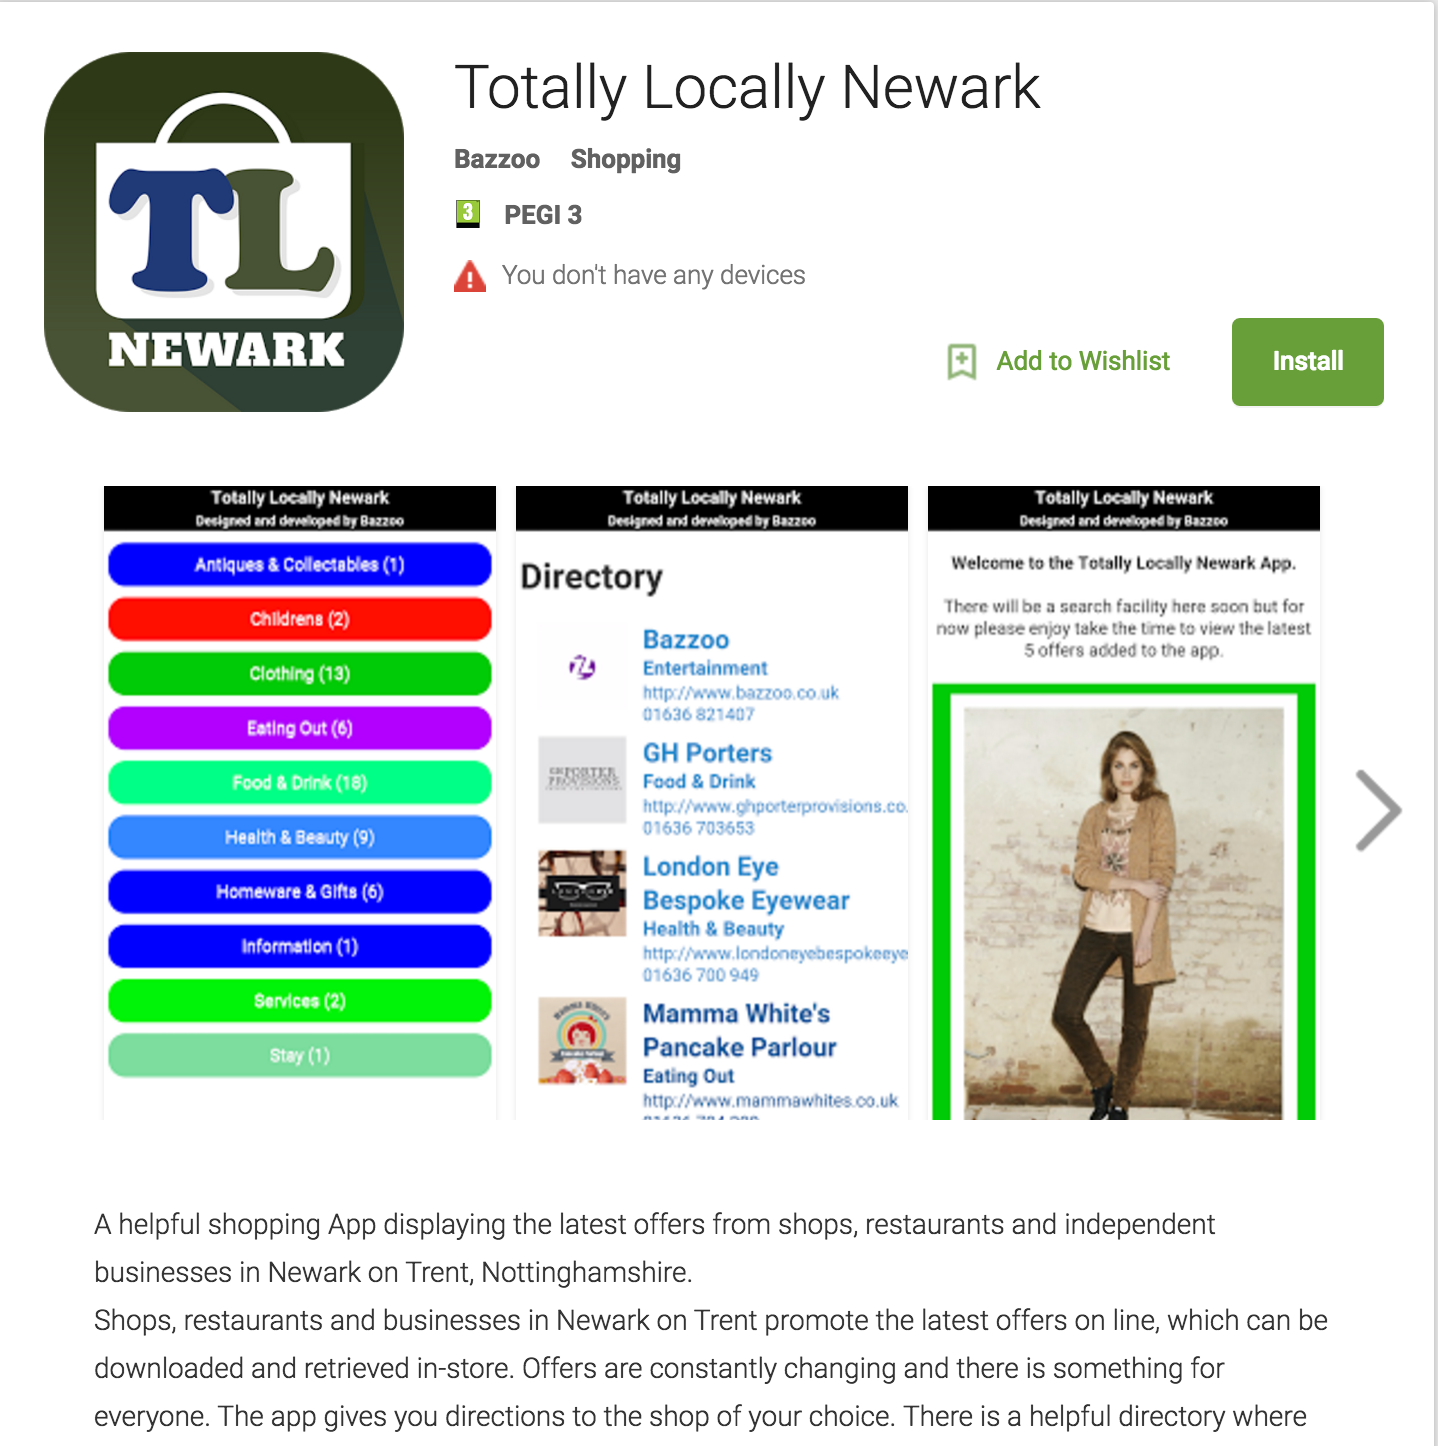 Retail App - Totally Locally Newark available from Google Play